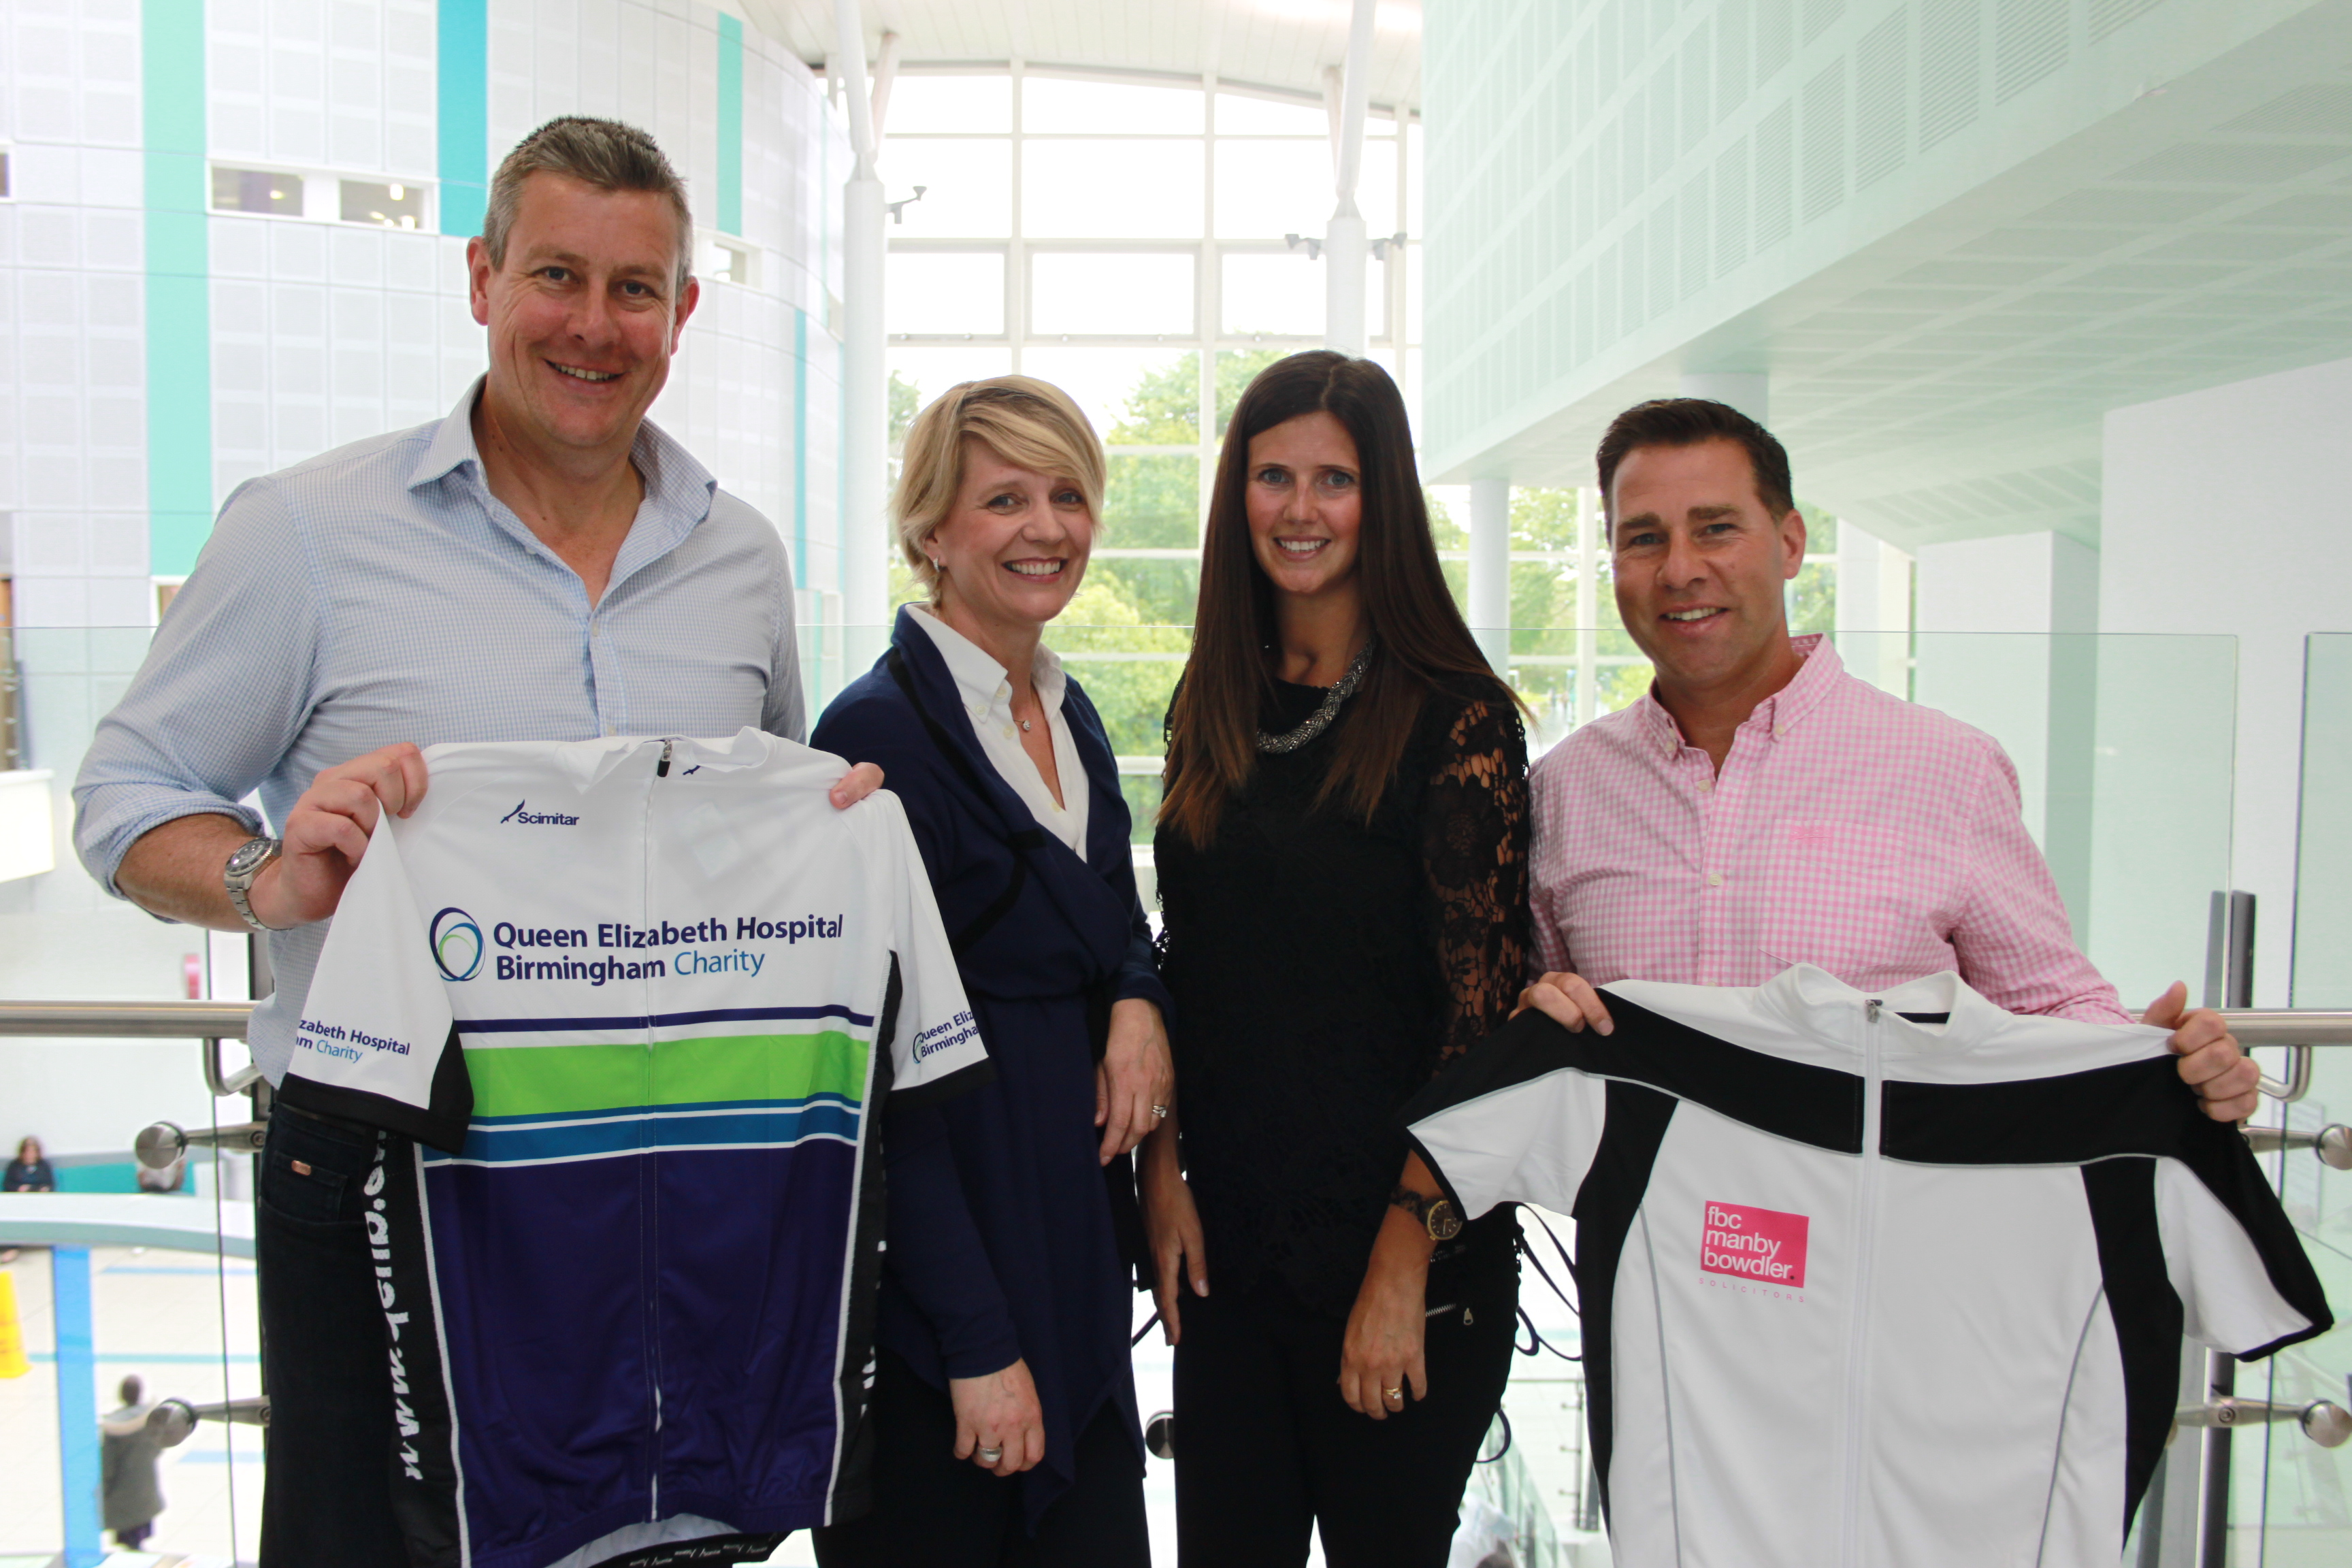 Solicitor swaps legal briefs for pedal power in charity challenge